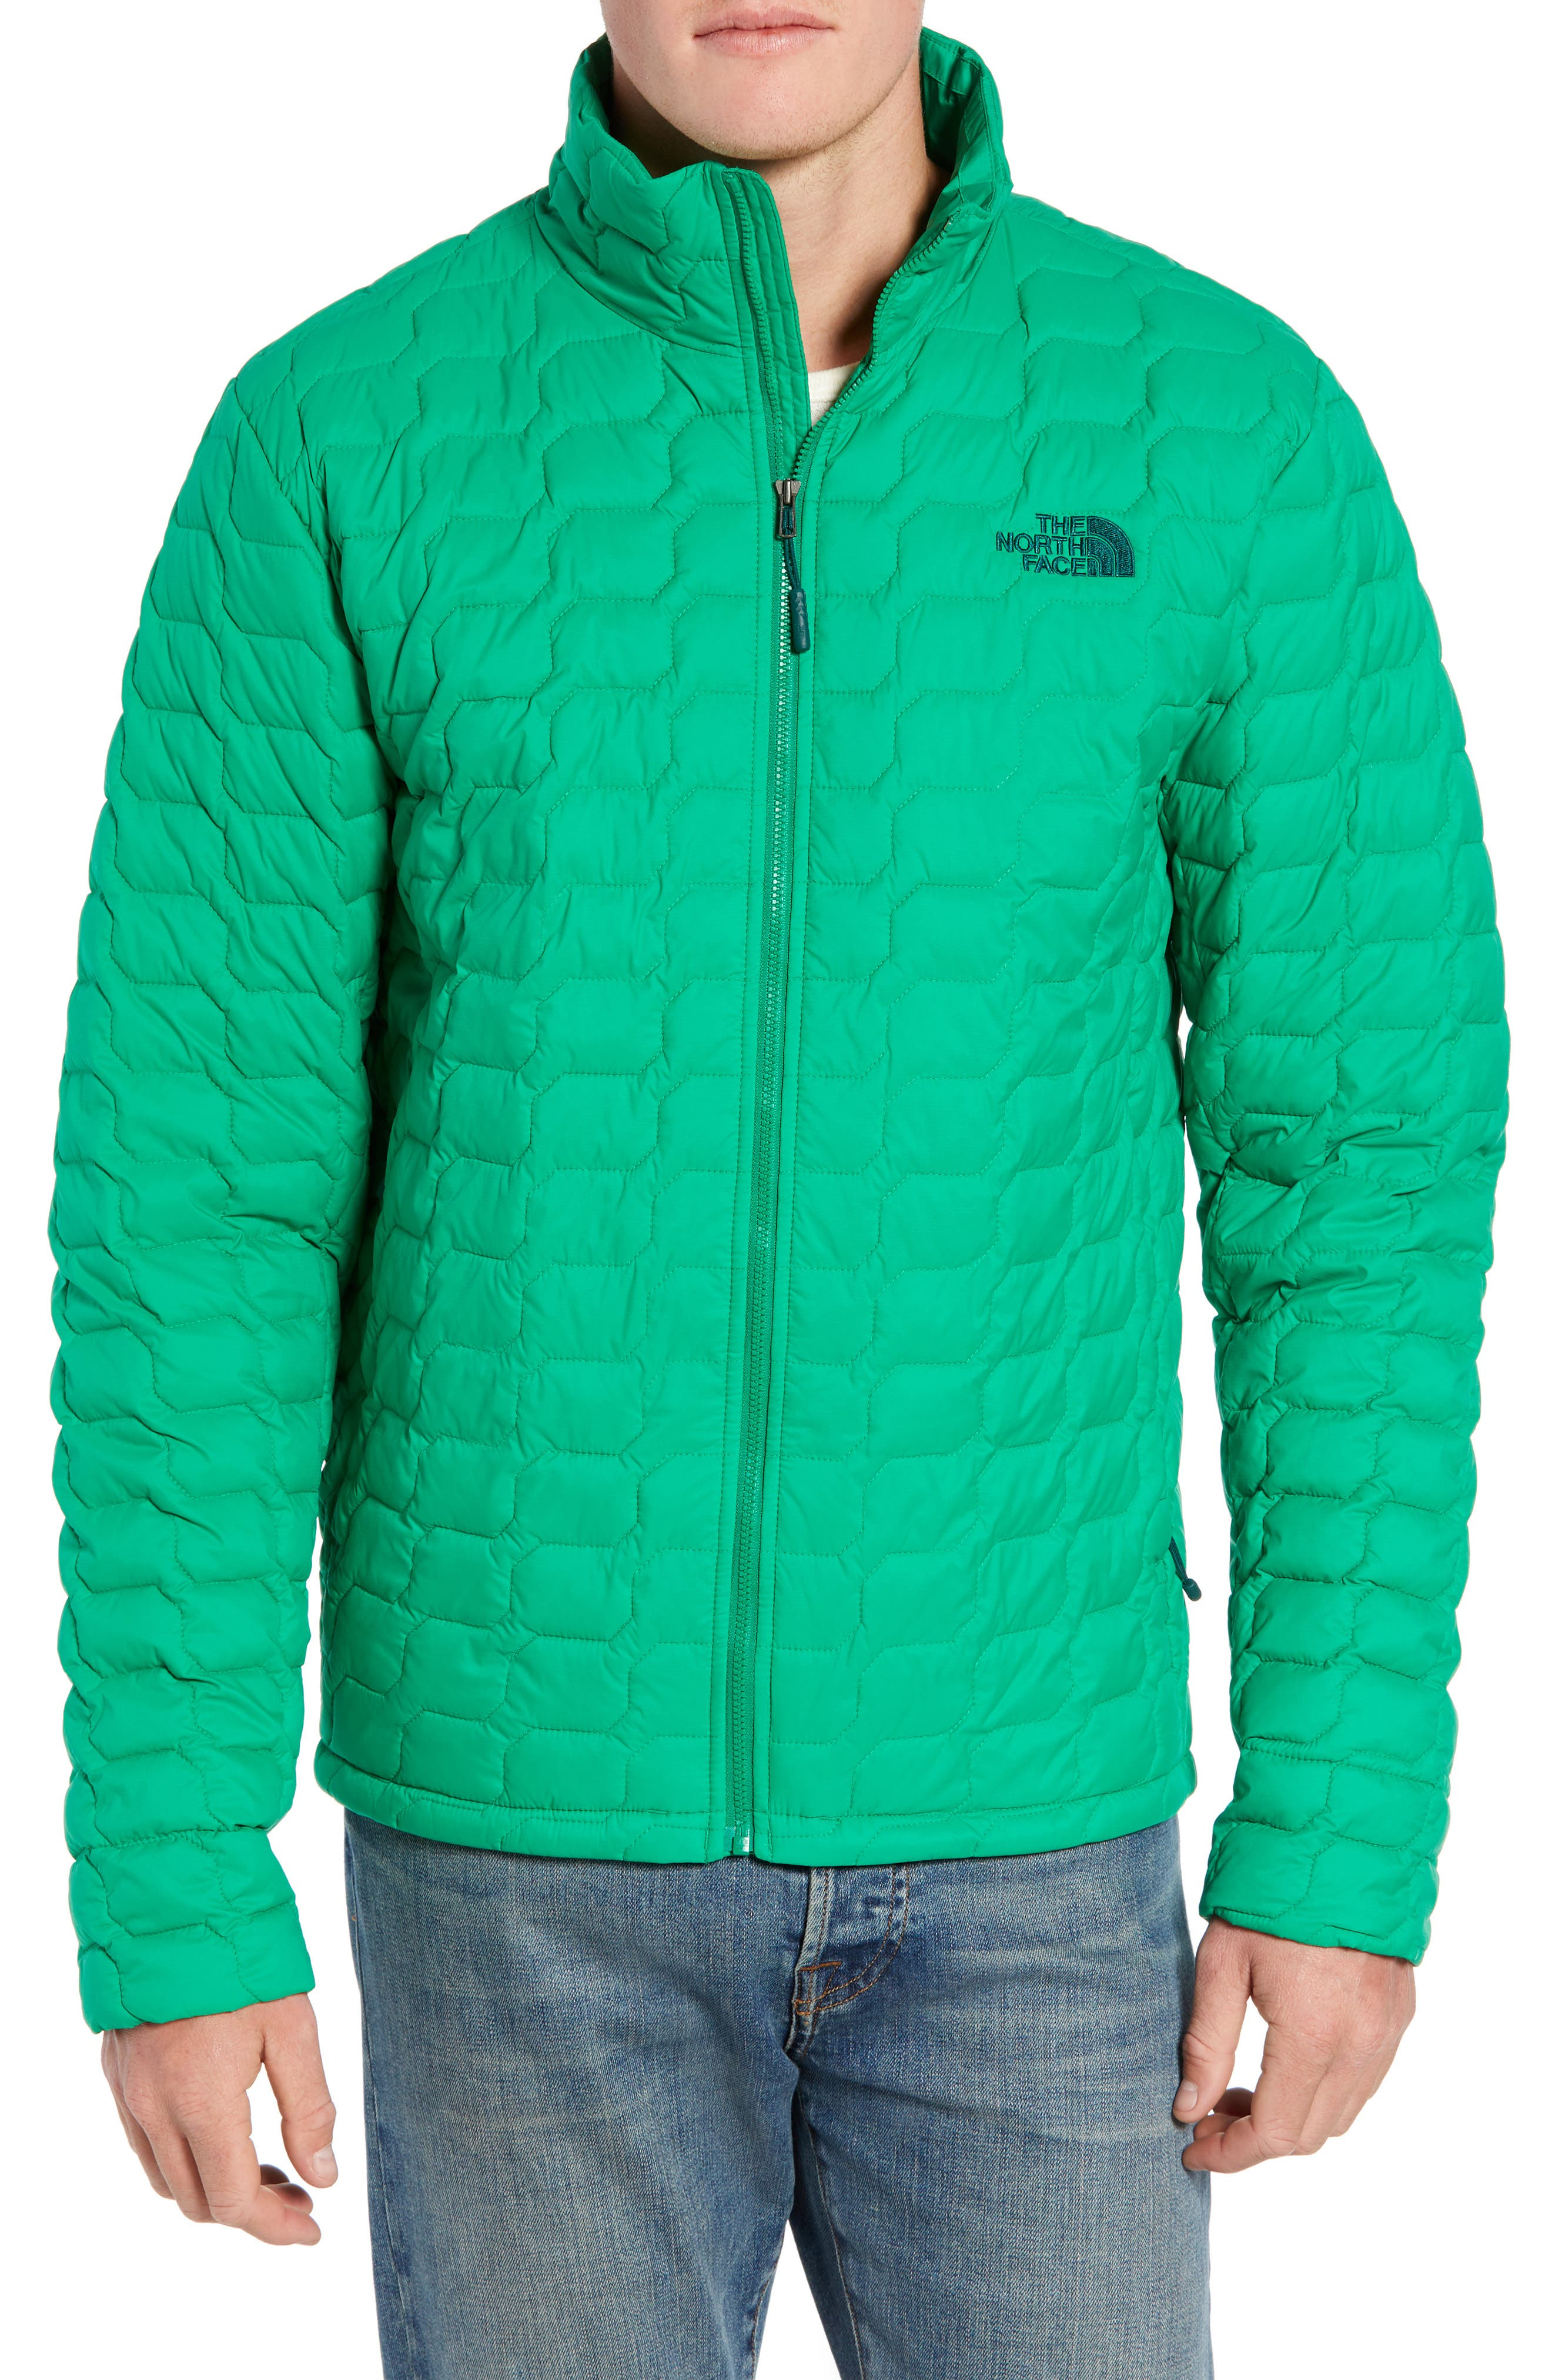 THE NORTH FACE,                             ThermoBall<sup>™</sup> Jacket,                             Main thumbnail 1, color,                             PRIMARY GREEN MATTE